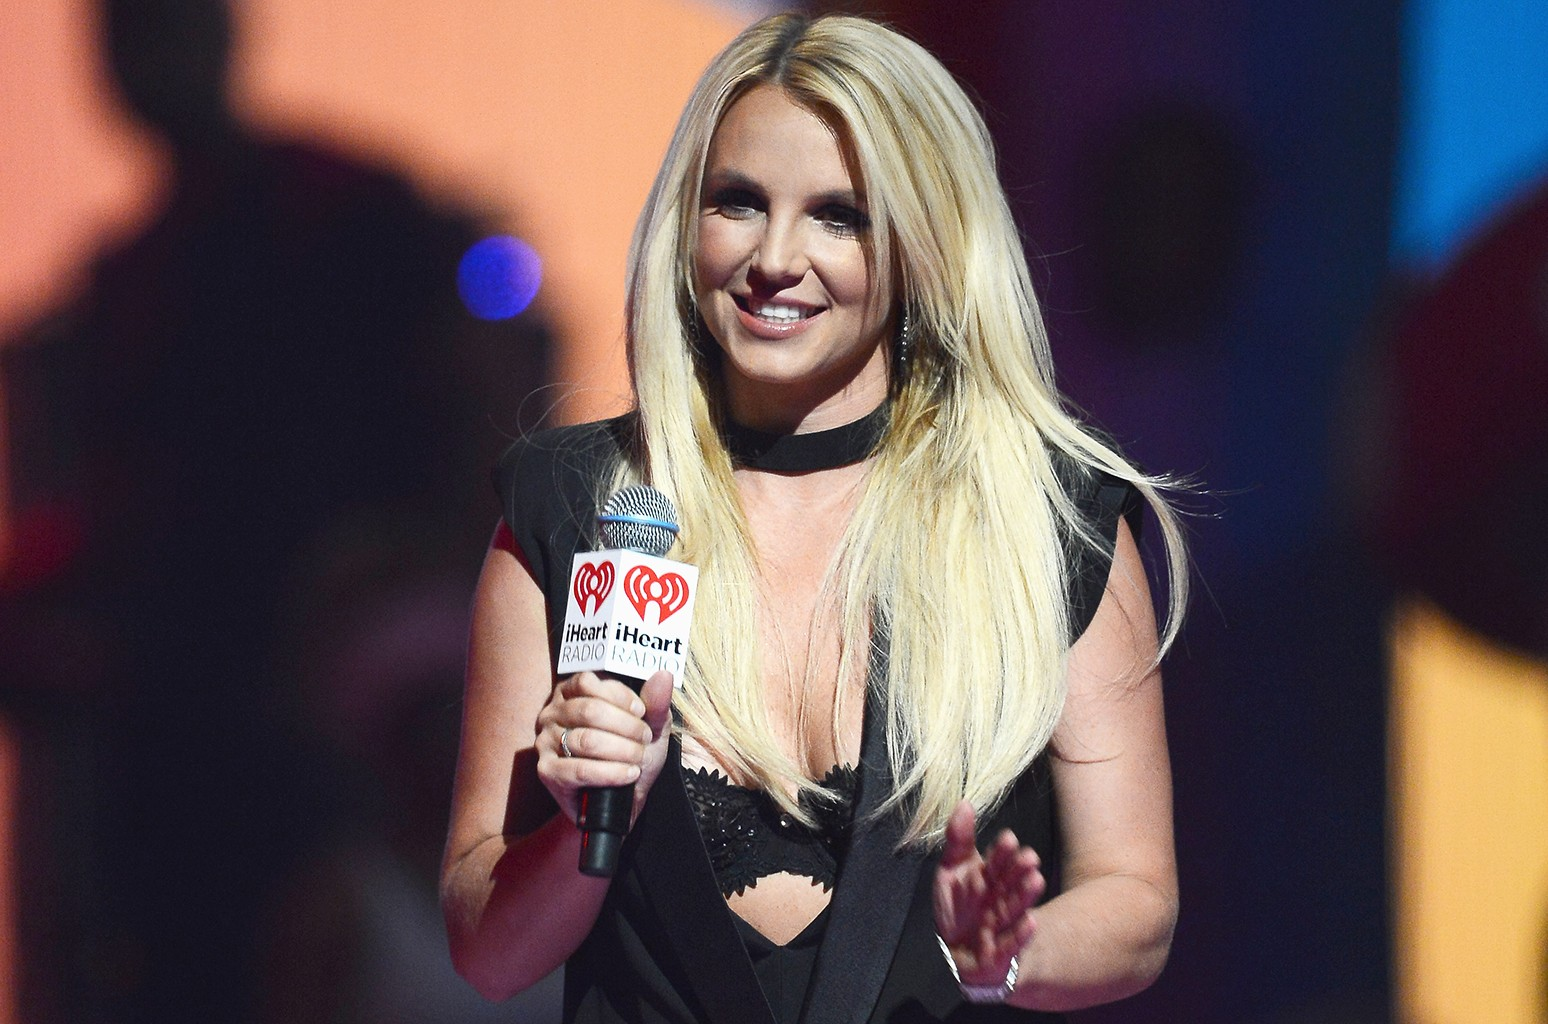 Britney Spears at the iHeartRadio Music Festival